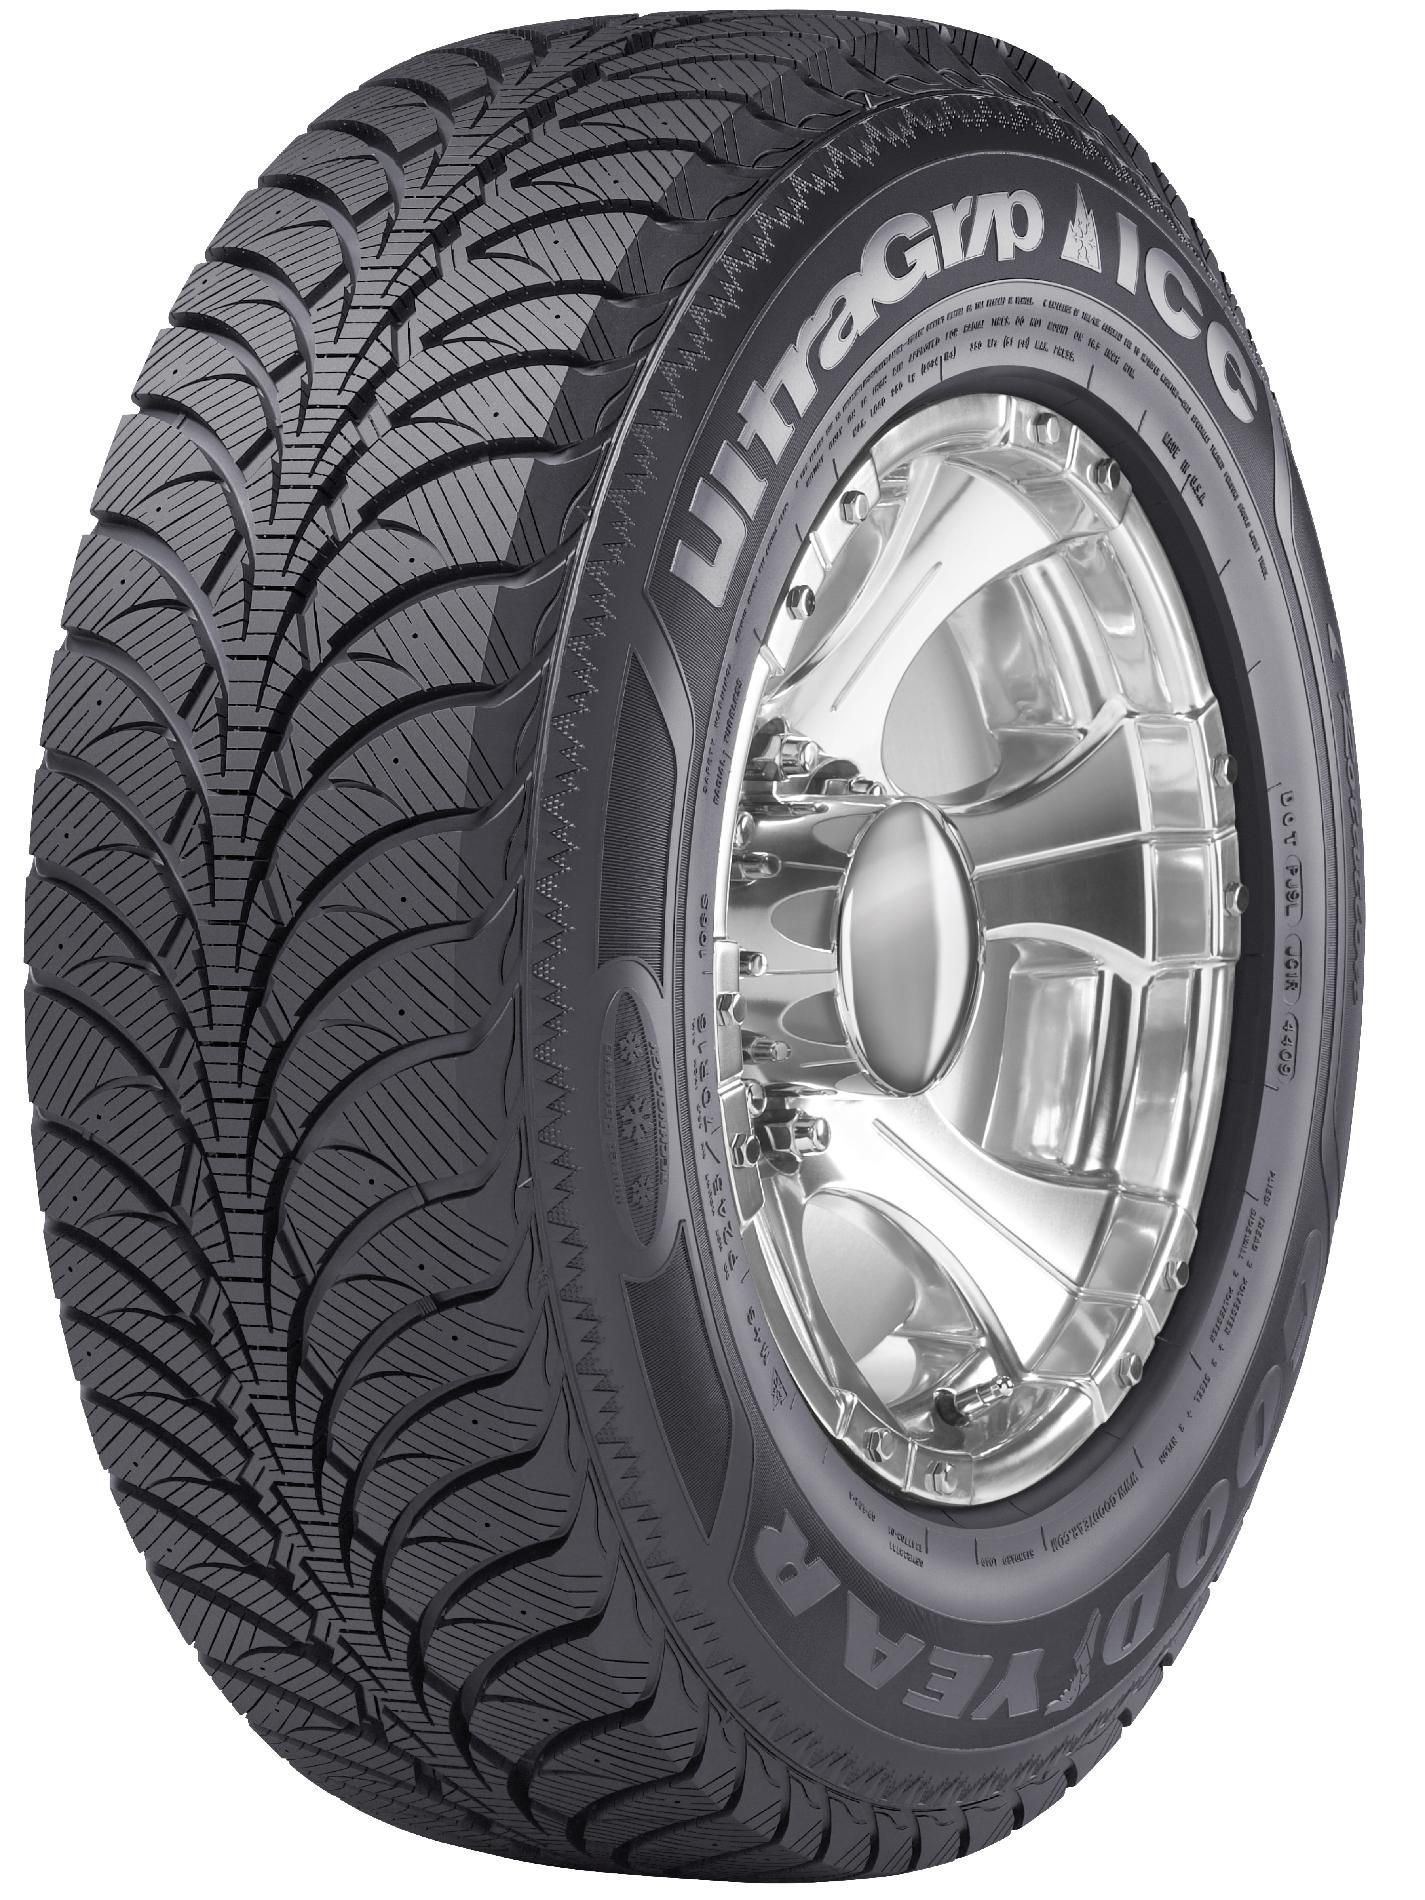 Goodyear Ultra Grip Ice WRT - 265/70R17 115S BW - Winter Tire 265-70-17